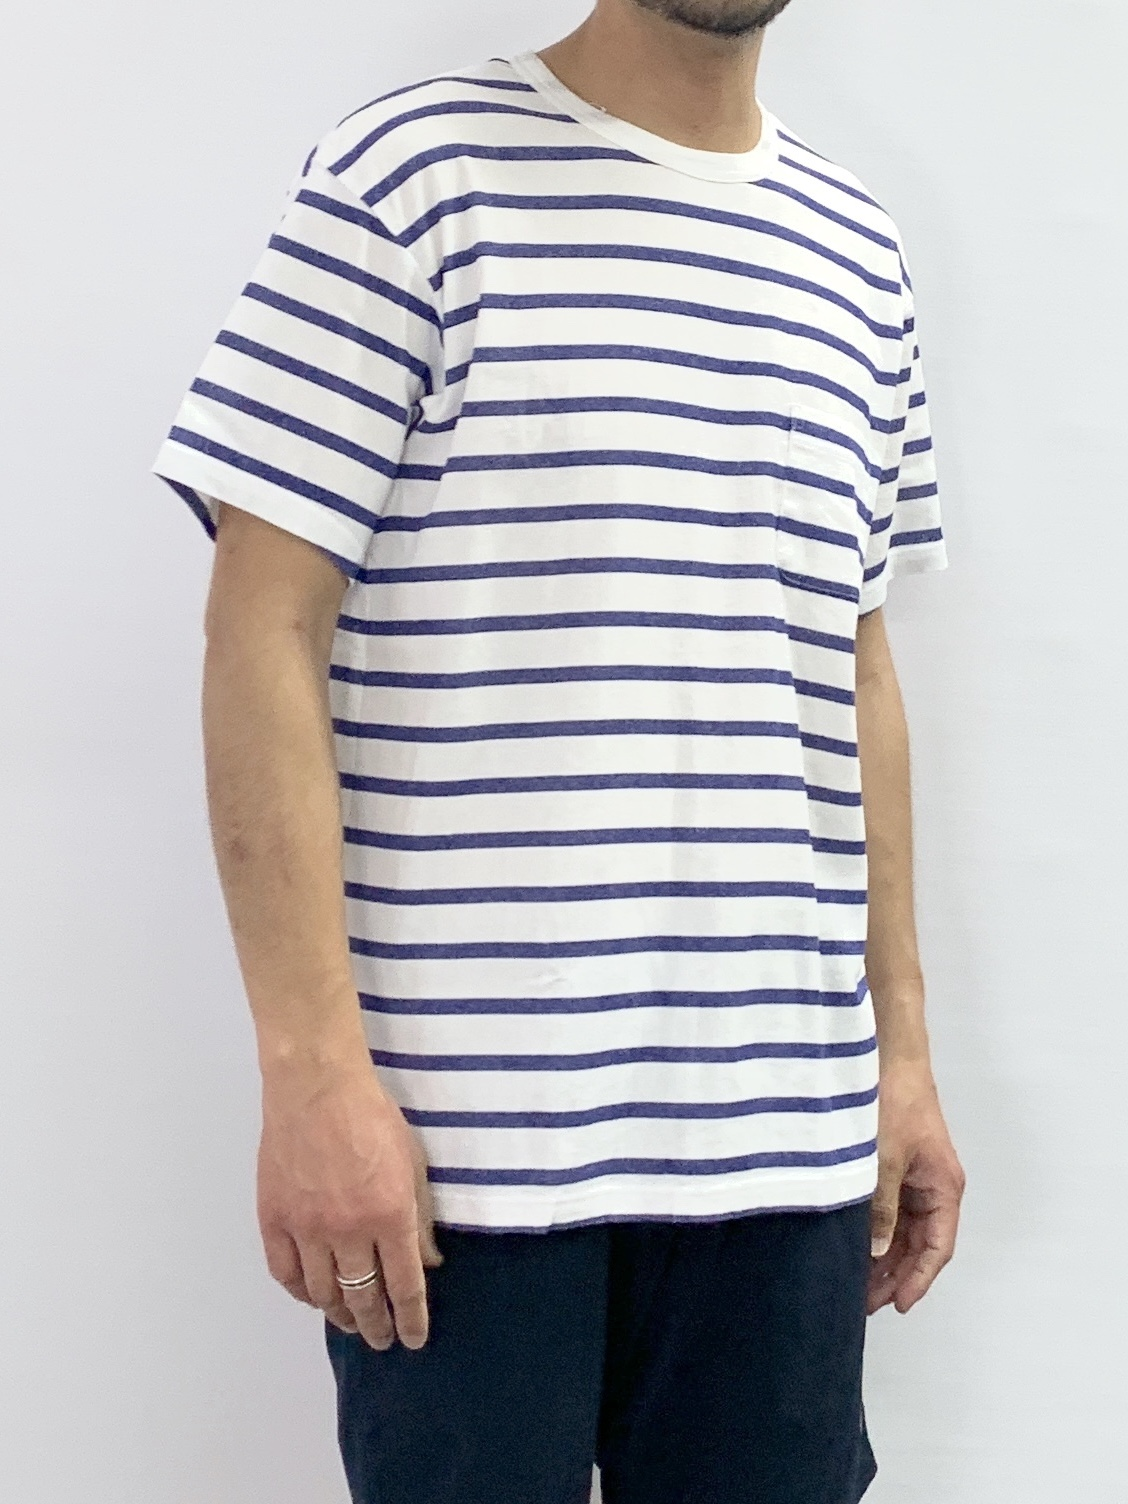 CREW NECK BORDER POCKET SHORTSLEEVE T-SHIRT1